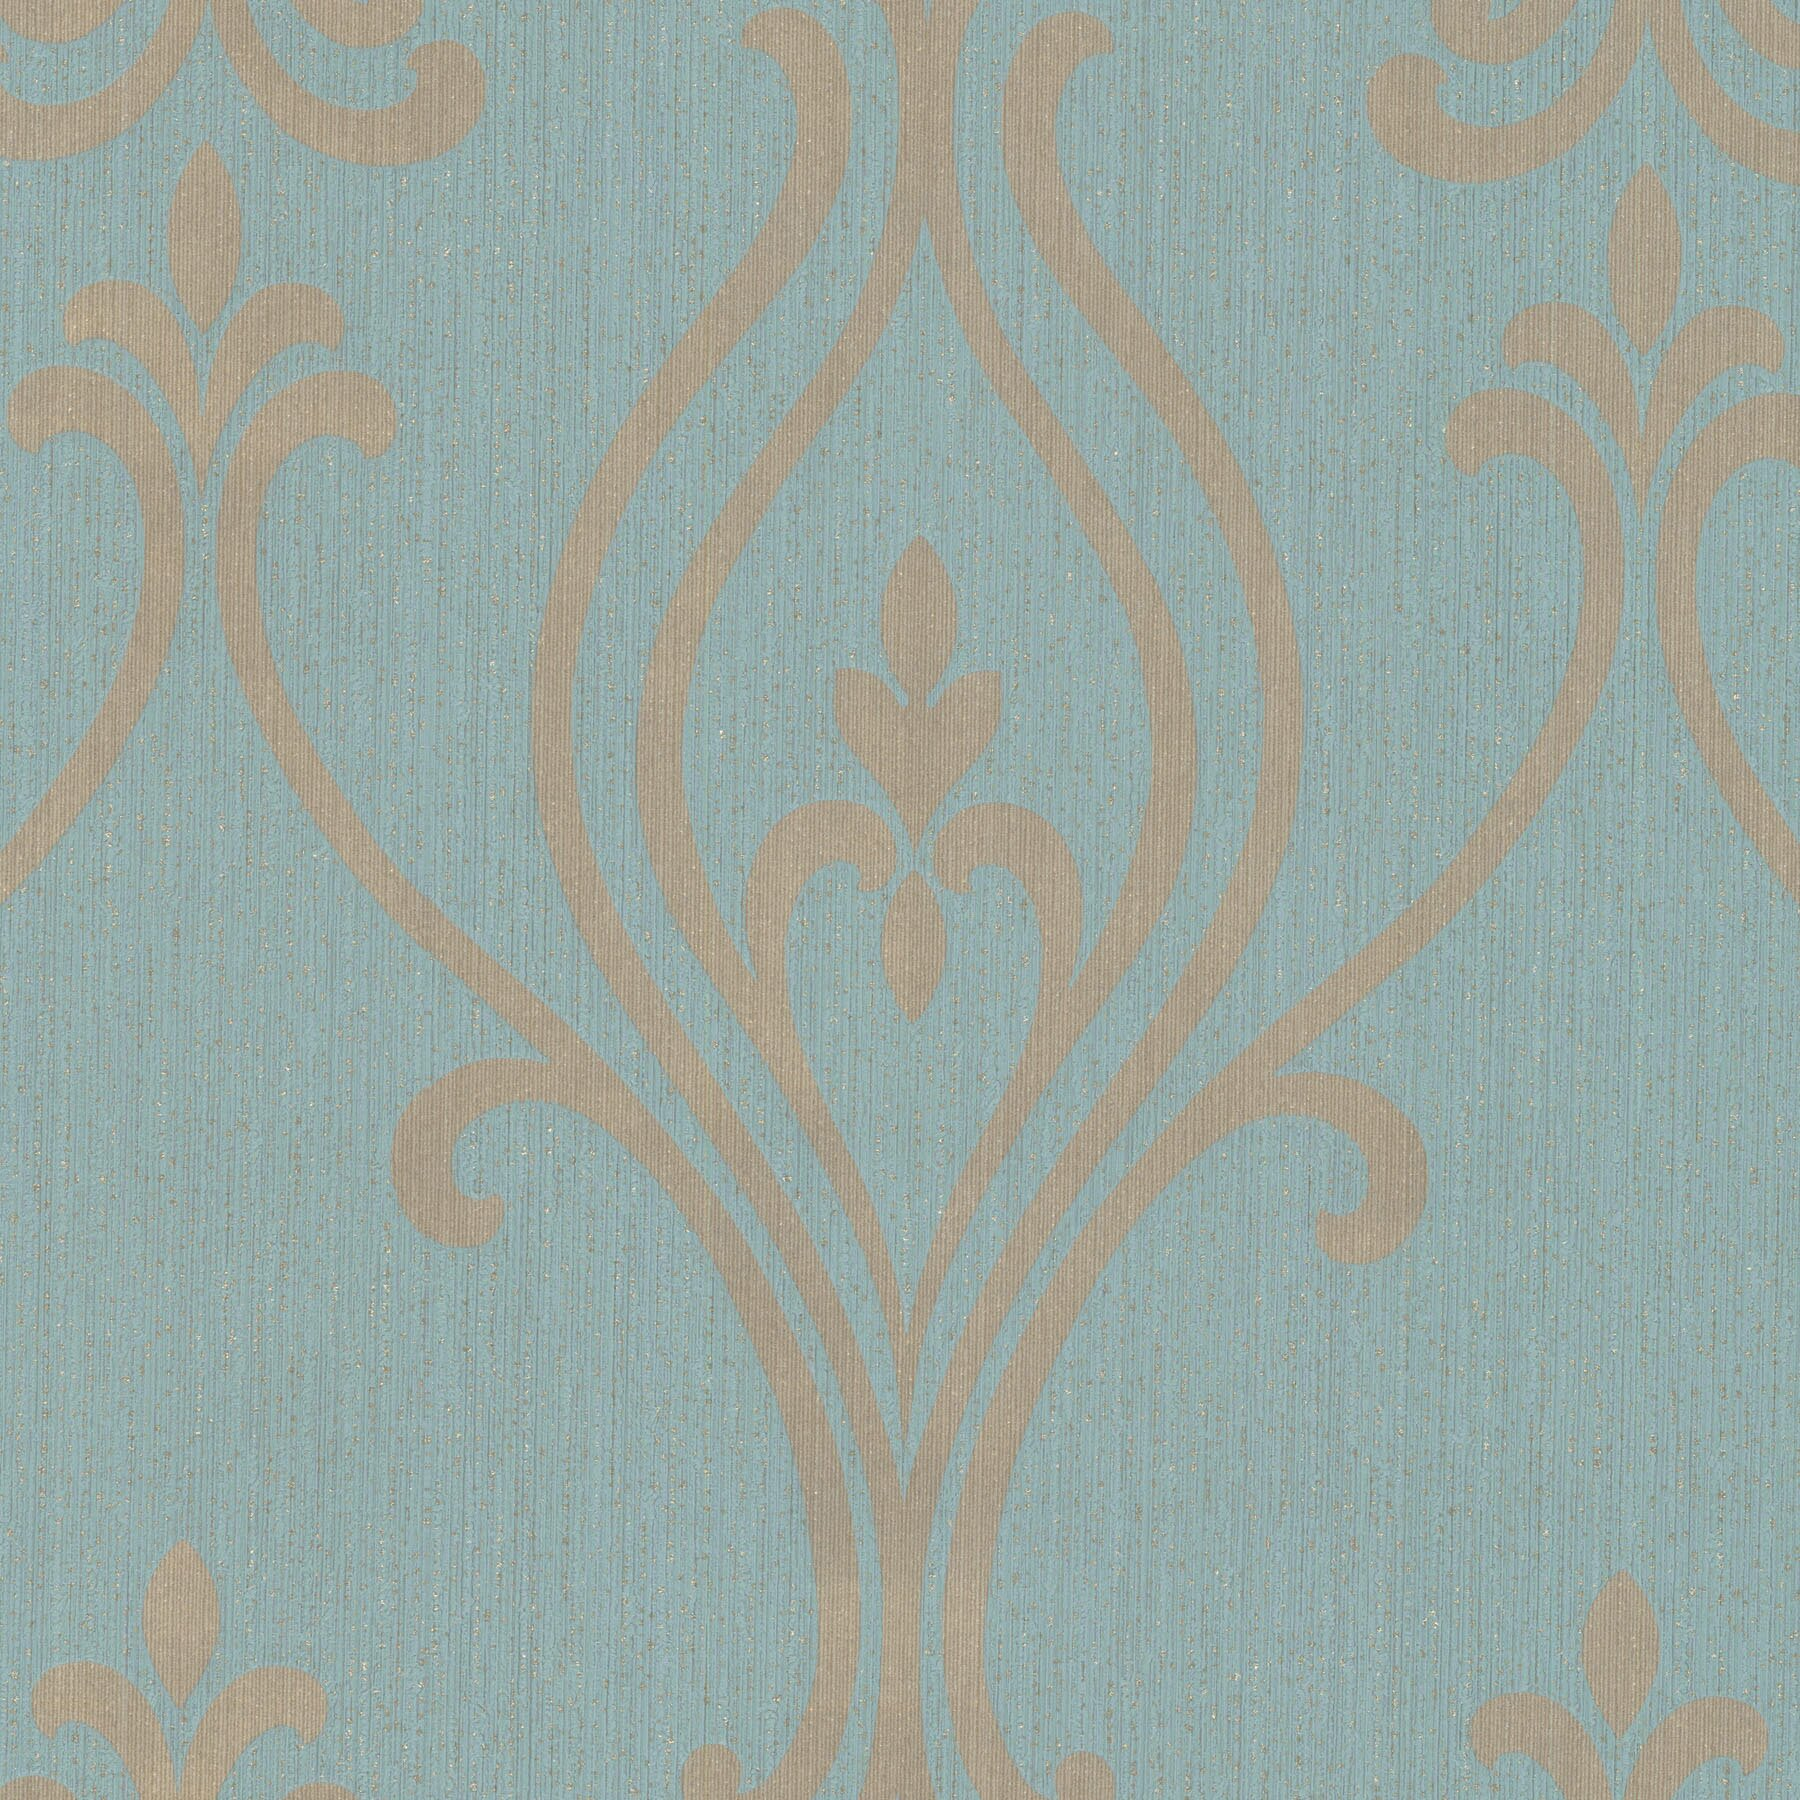 Brewster home fashions prism luca damask 33 39 x 20 5 for 3d embossed wallpaper